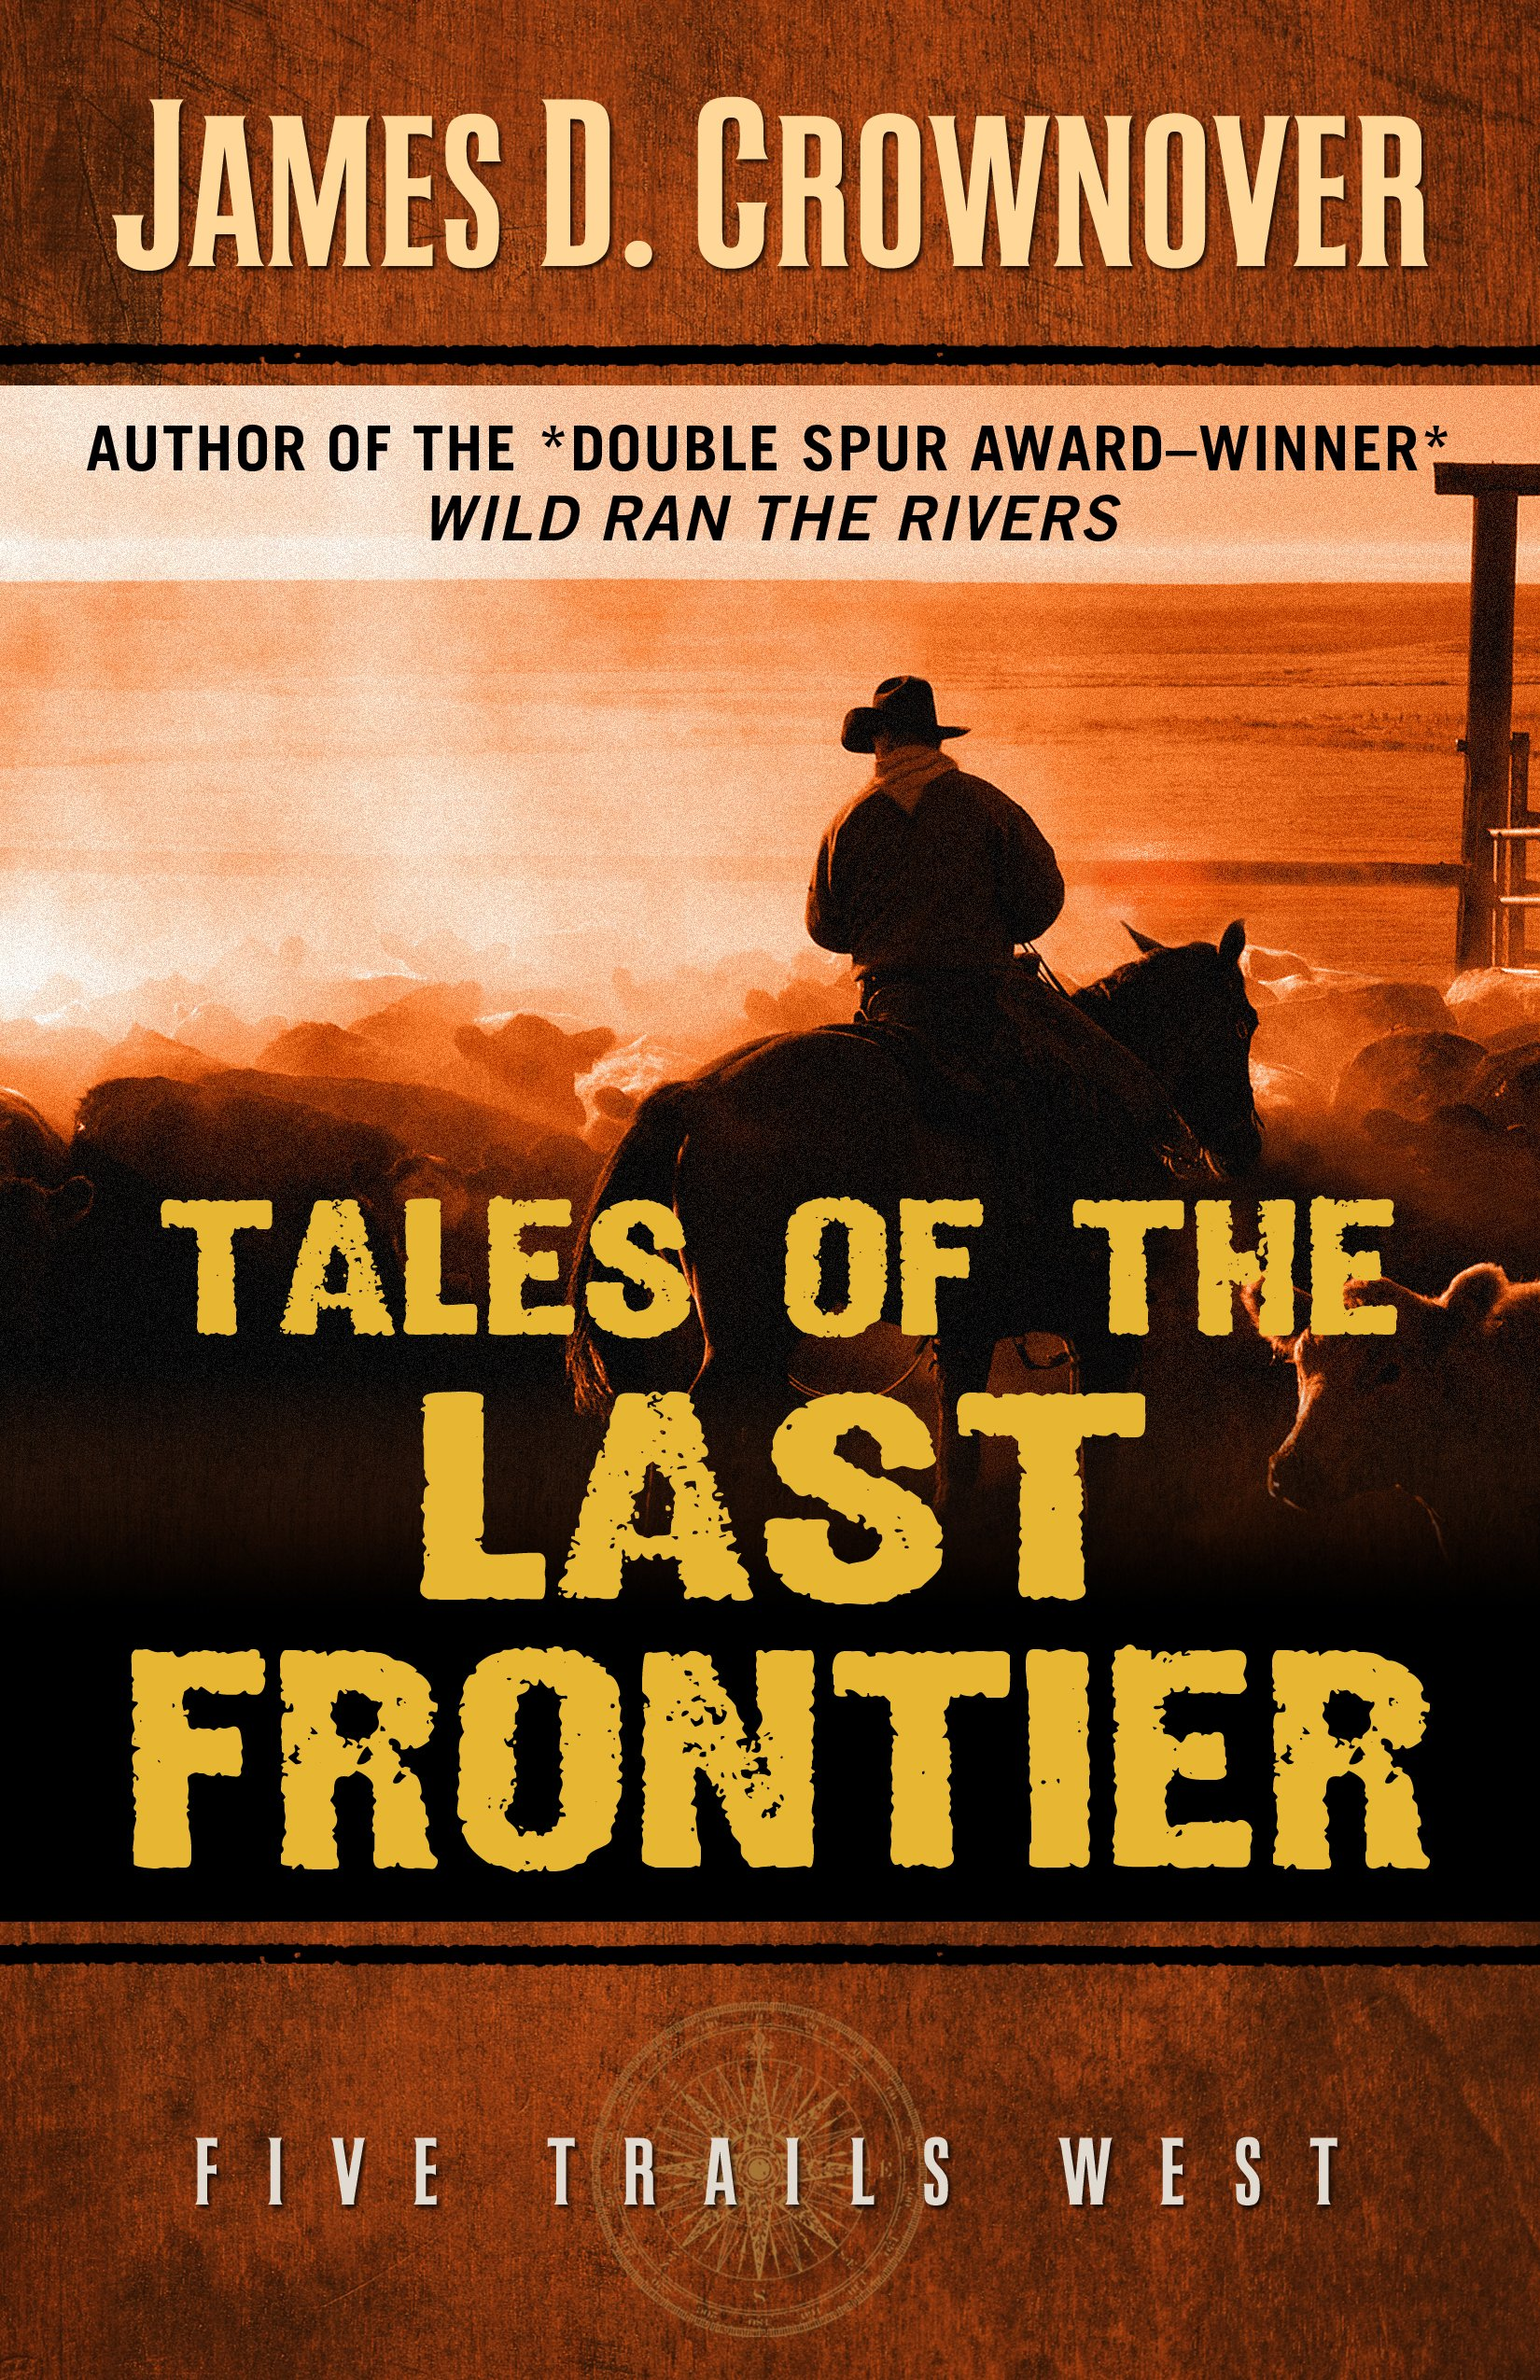 Download Tales of the Last Frontier (Five Trails West) pdf